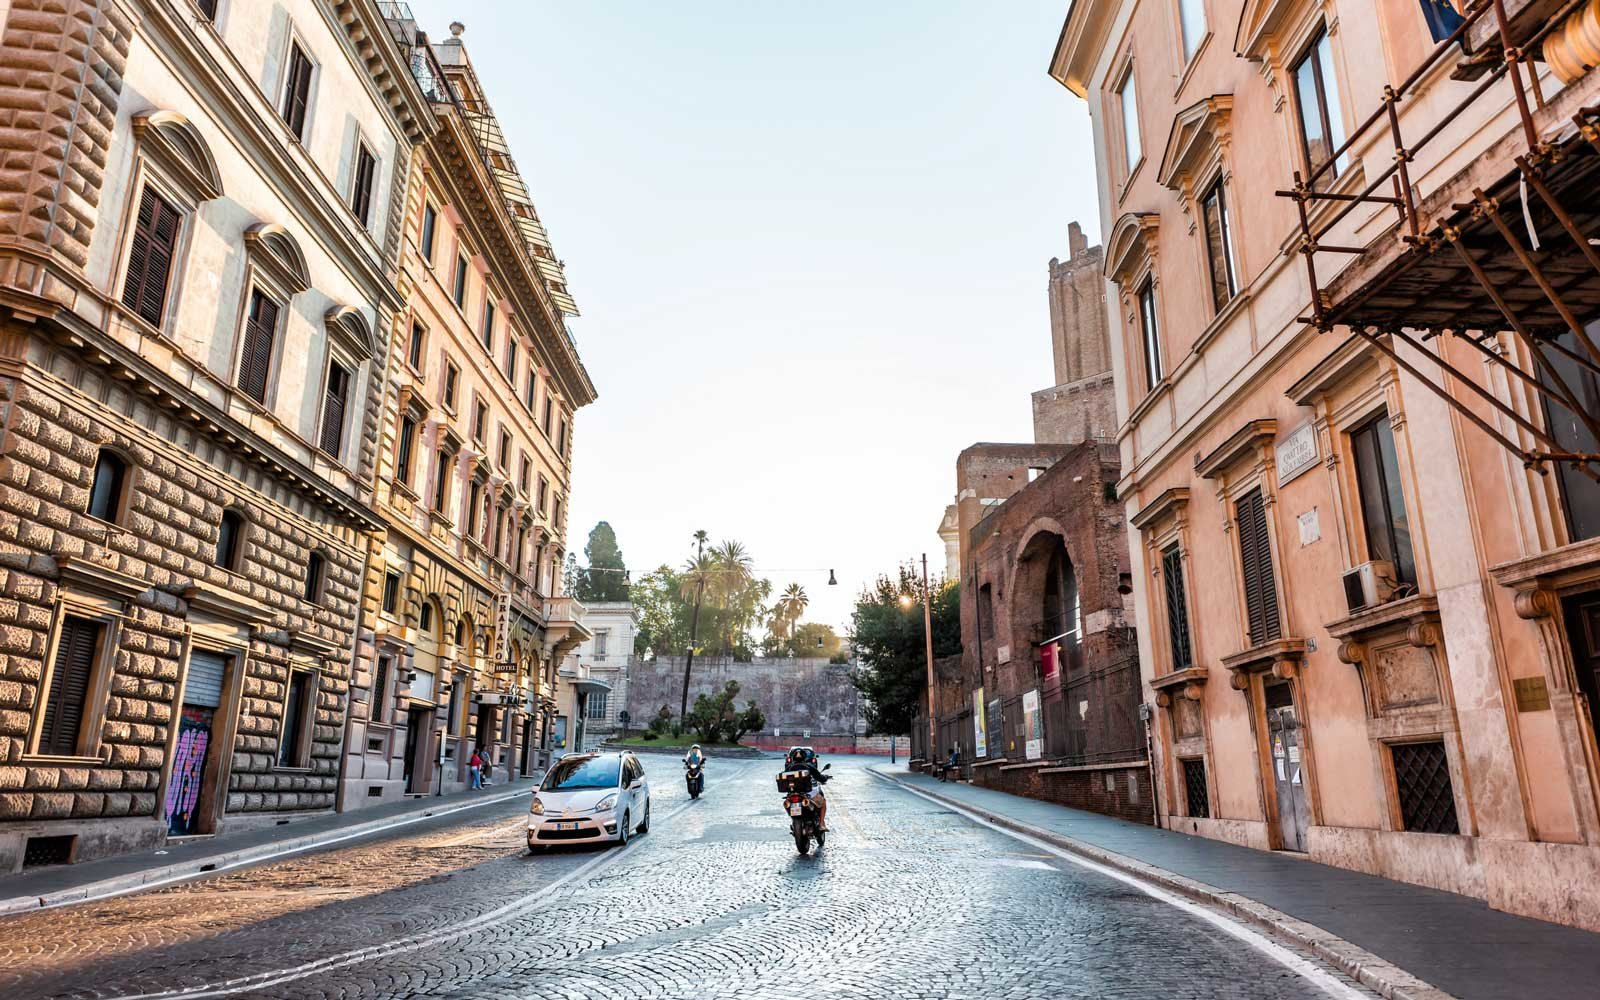 Why Rome Is Replacing Its Historic Cobblestone Streets With Not-so-quaint Asphalt